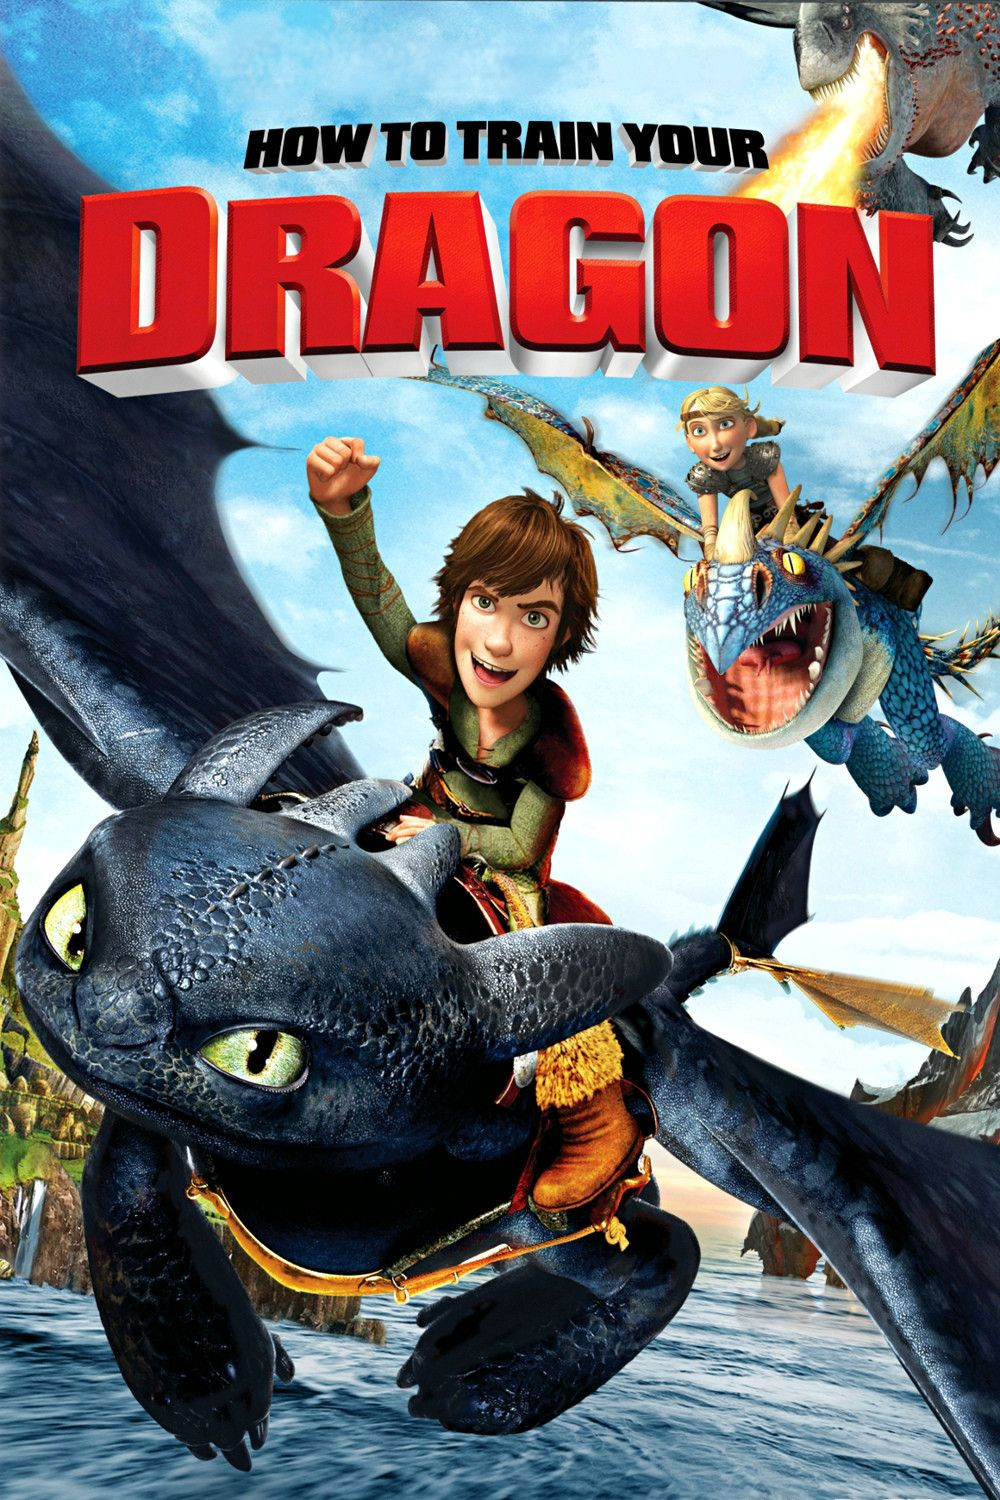 How to Train Your Dragon  Full Movie. Click Image To Watch How to Train Your Dragon 2010